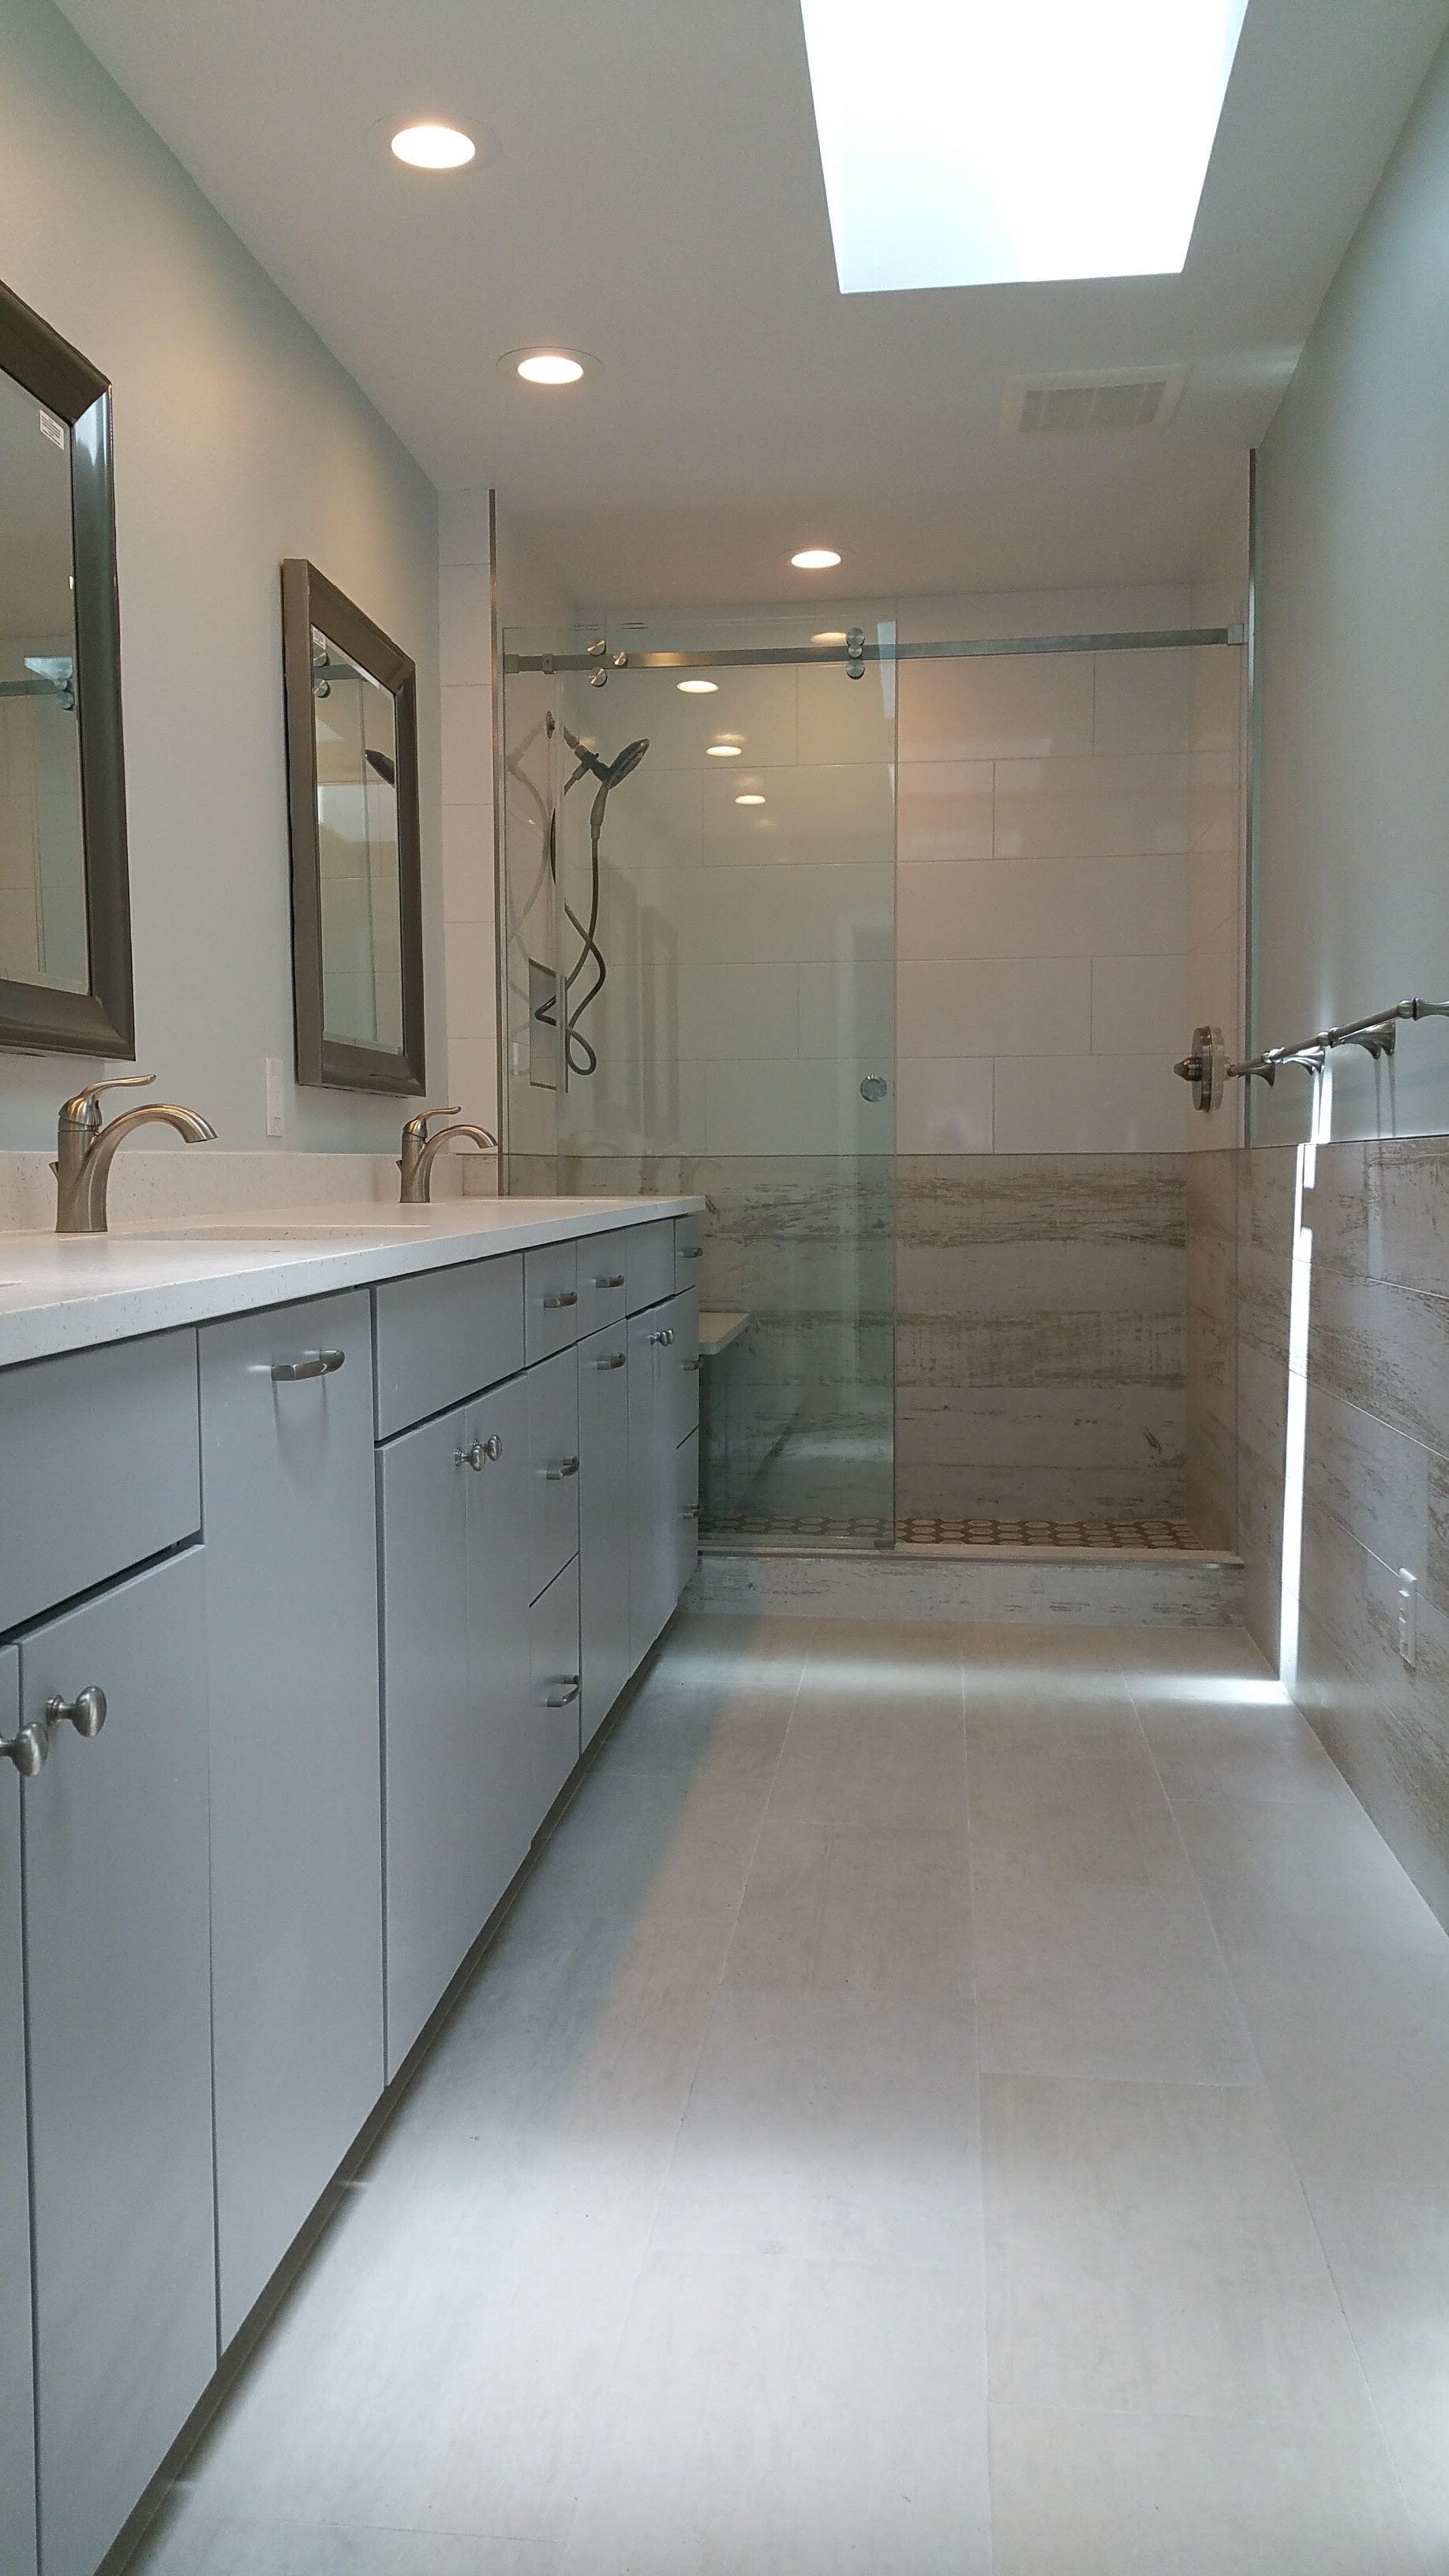 Full bathroom remodel with new shower, counters, cabinets and tile